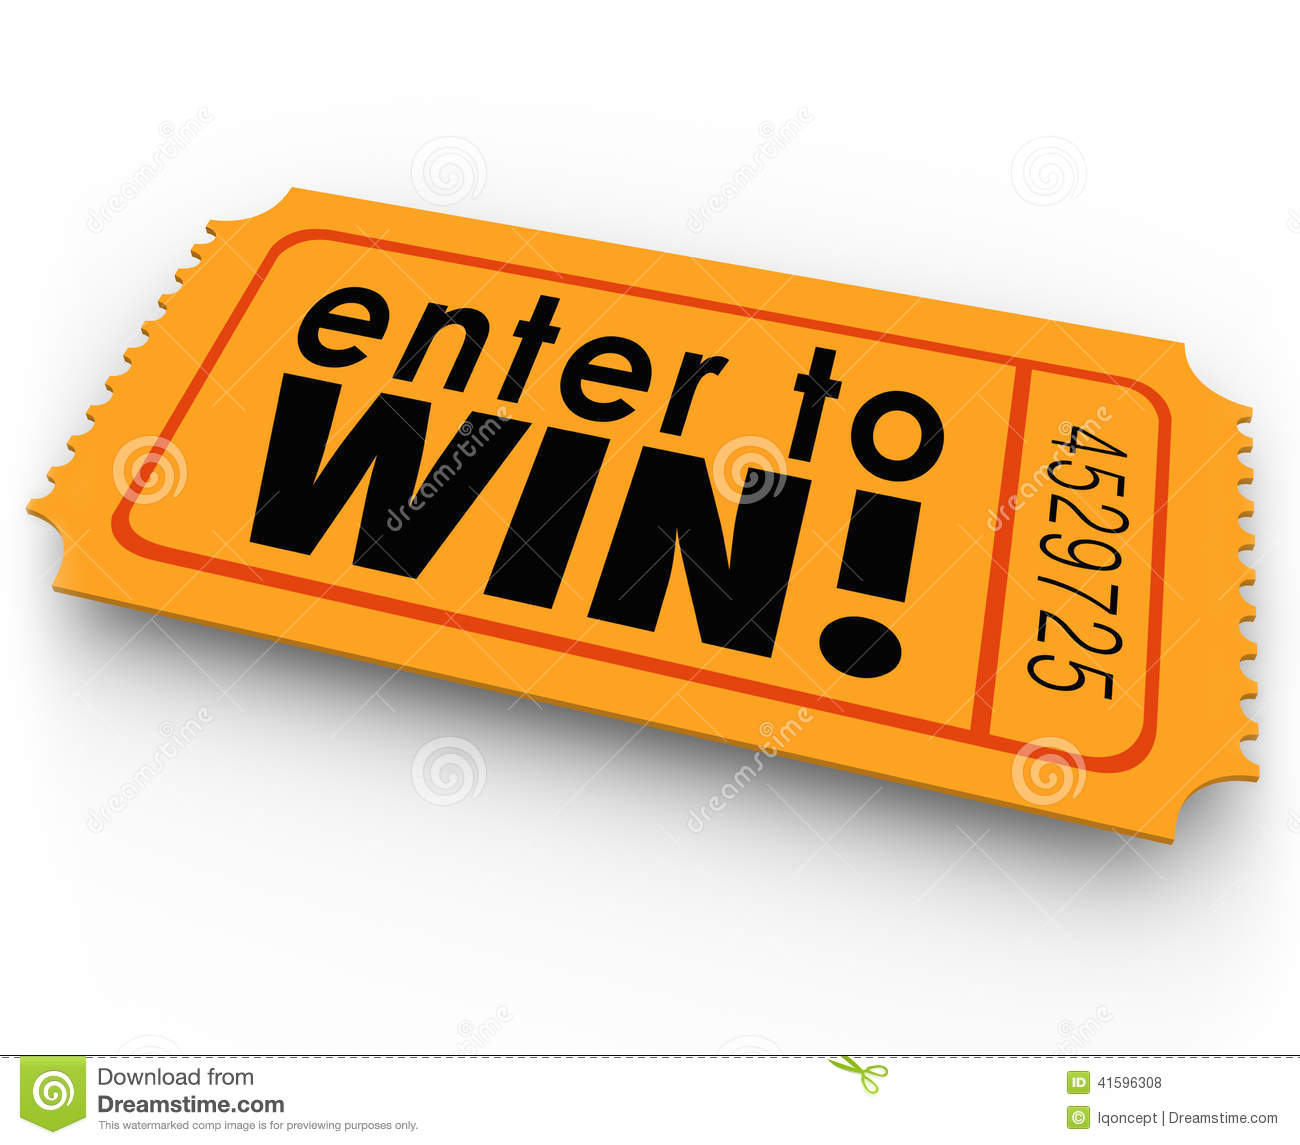 Win Words On An Orange Ticket For A Raffle Or Jackpt Drawing Where You